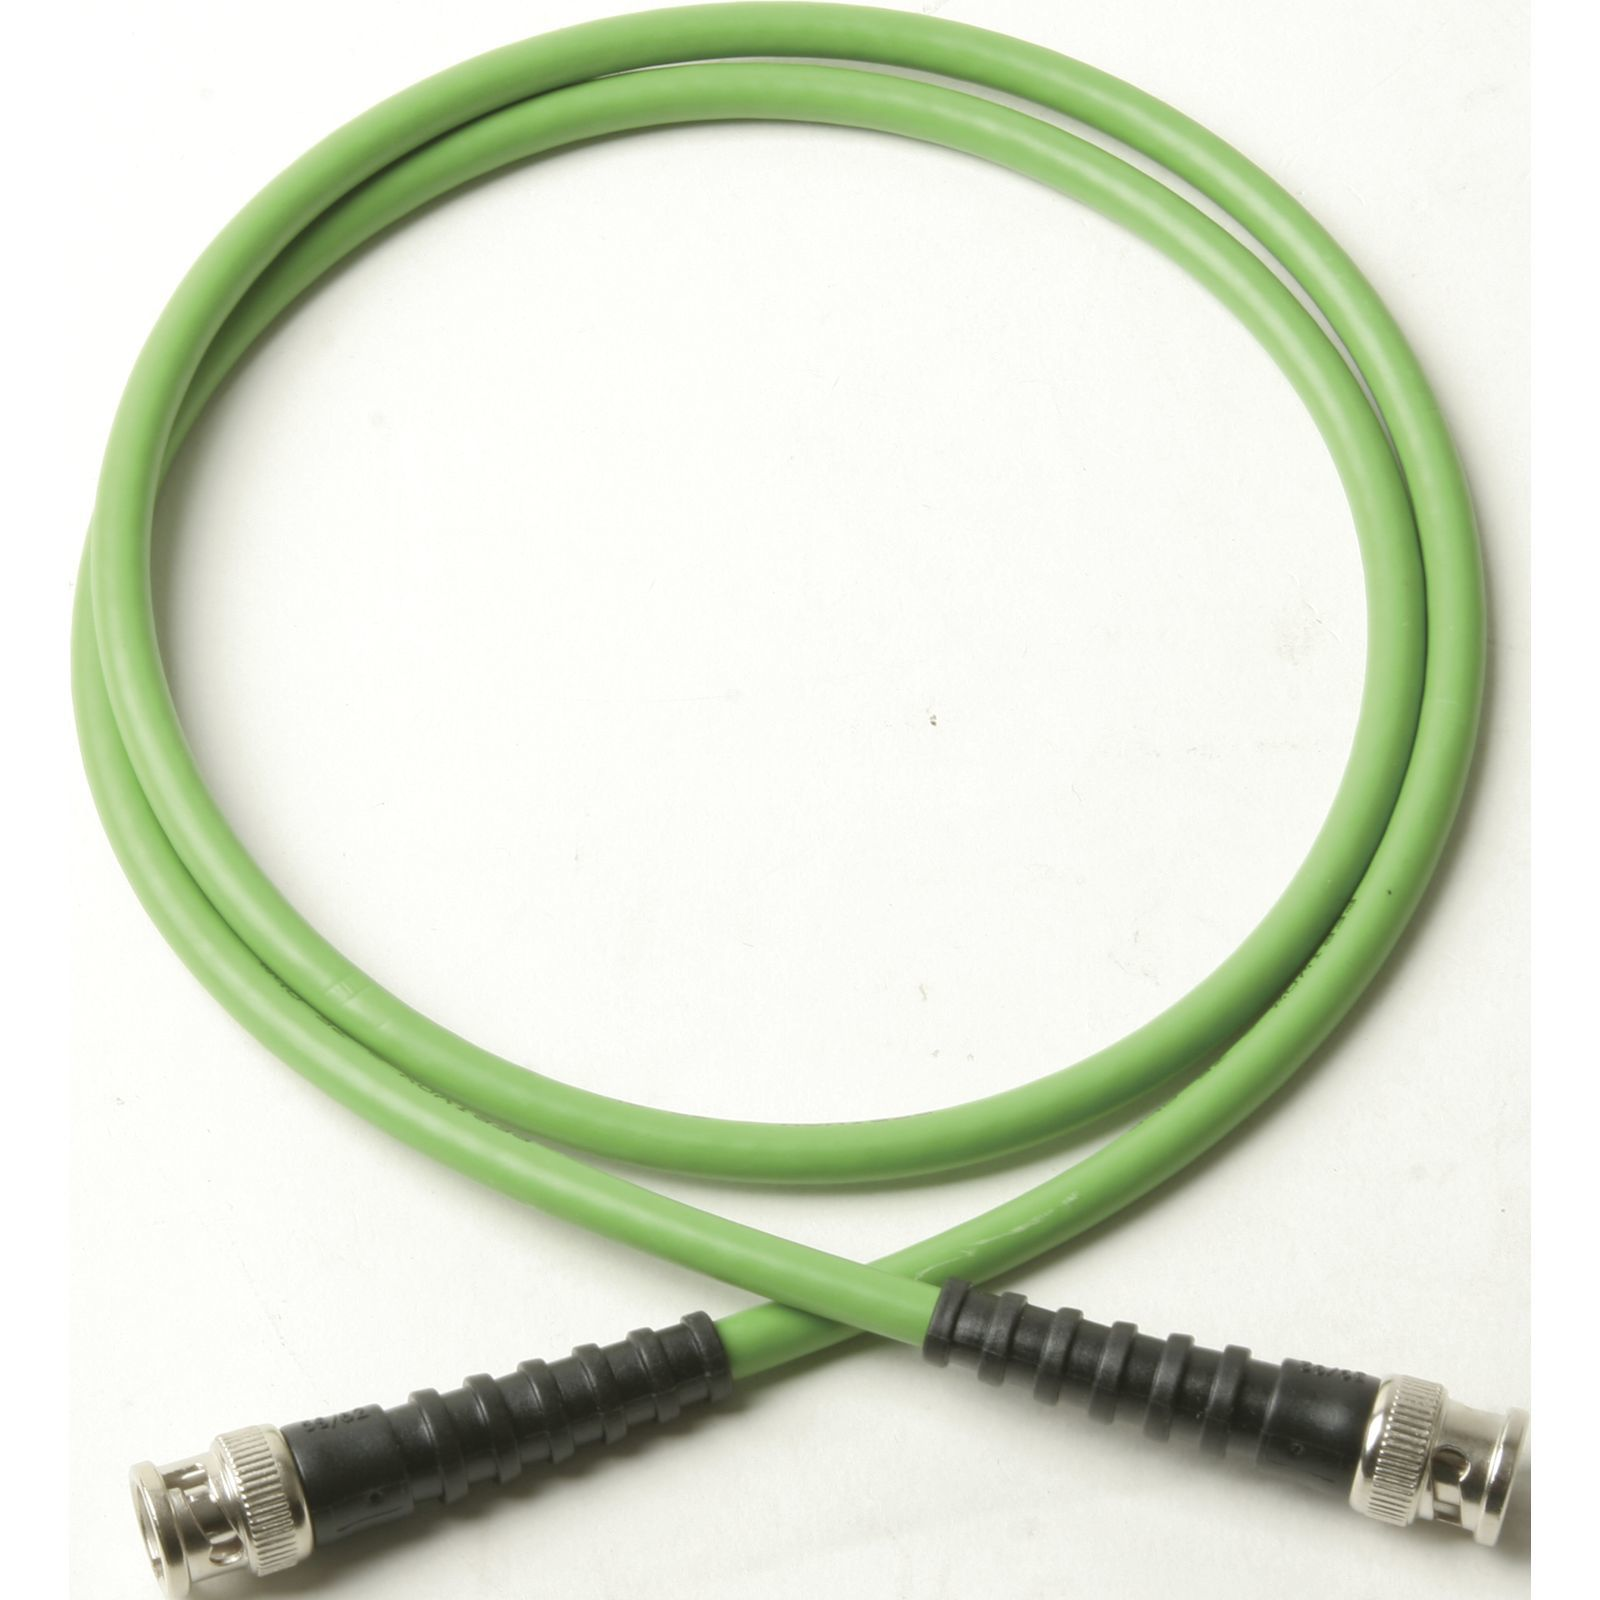 MUSIC STORE MTB 15,0 BNC75 Wordclock Cable BNC-Connector, 75 ohm, 15m Produktbillede